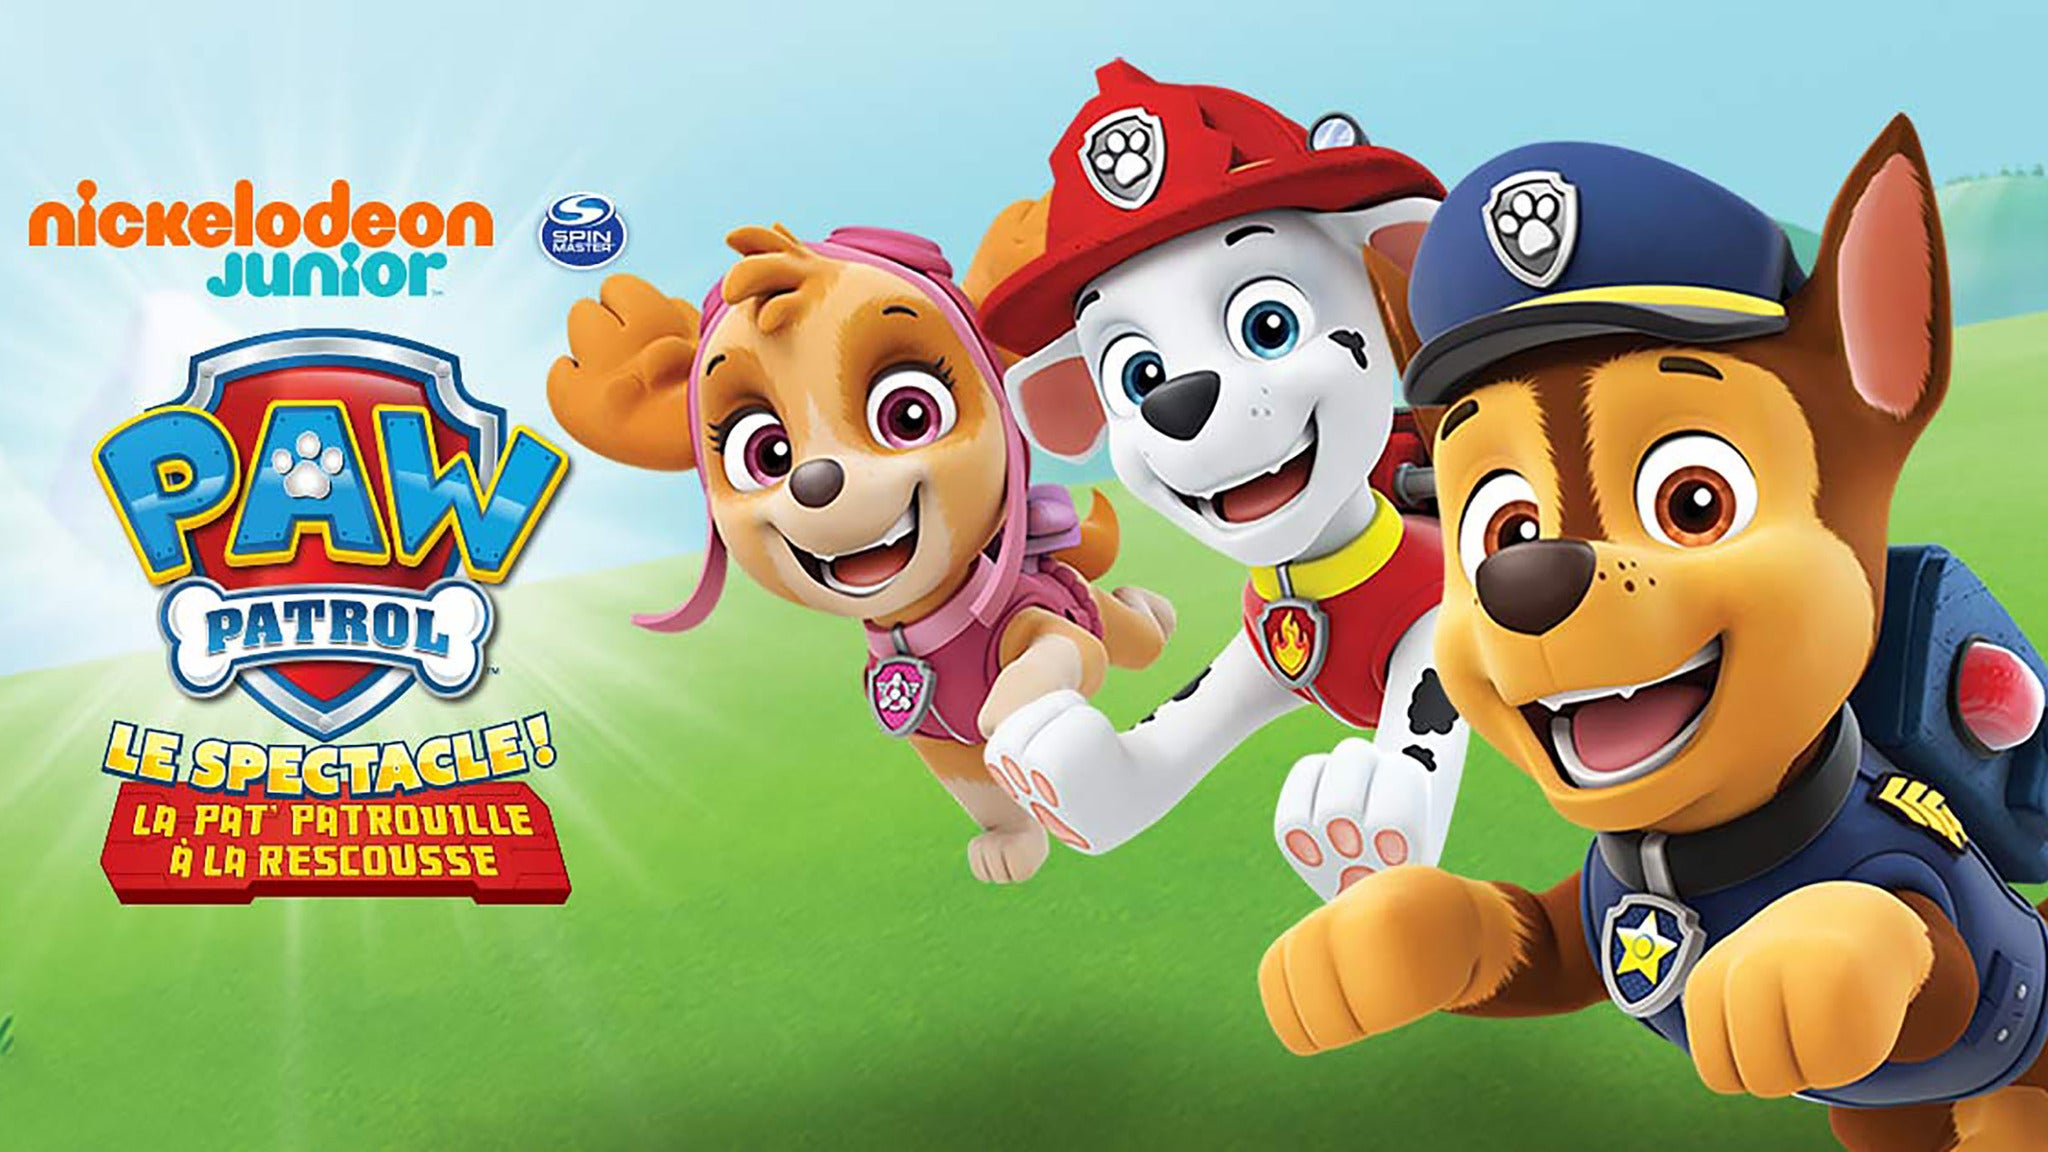 PAW Patrol Live! at The Granada - CA